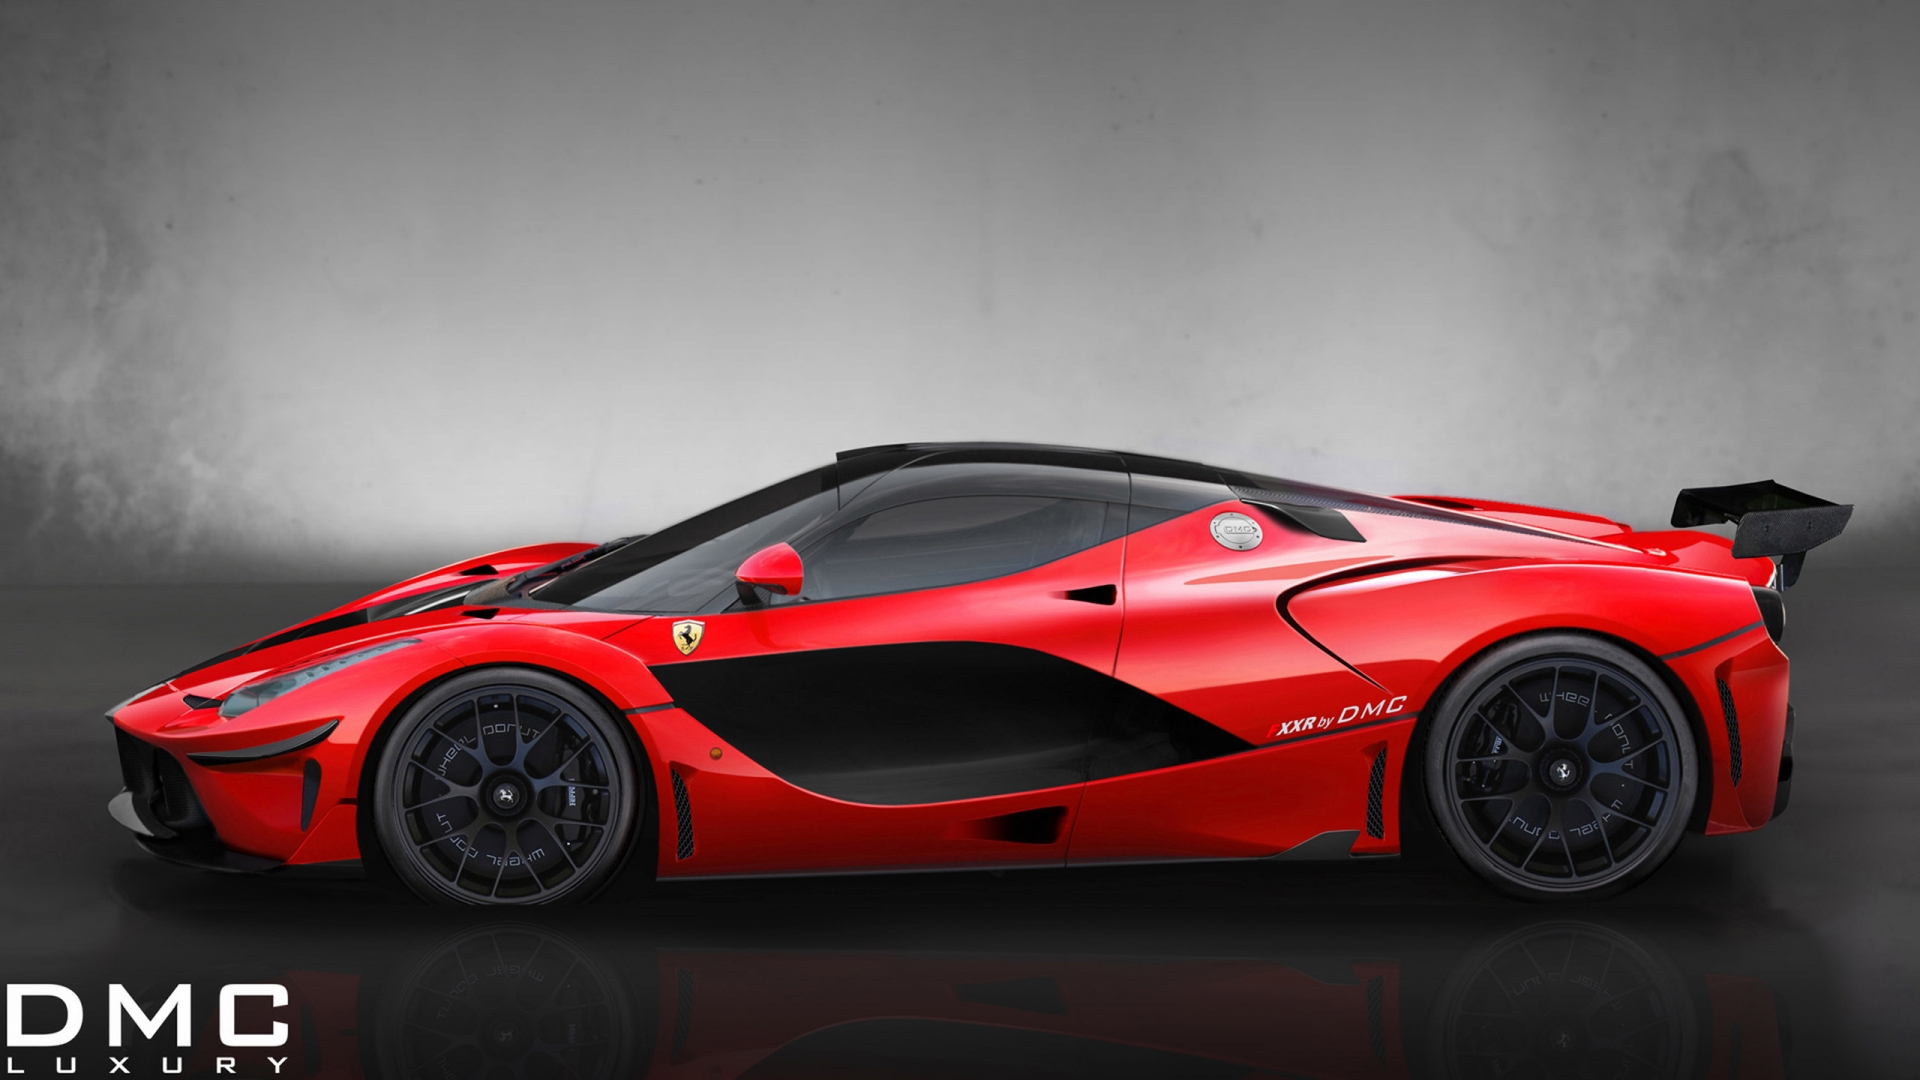 Cool Sports Cars Ferrari: Ferrari FXXR Side